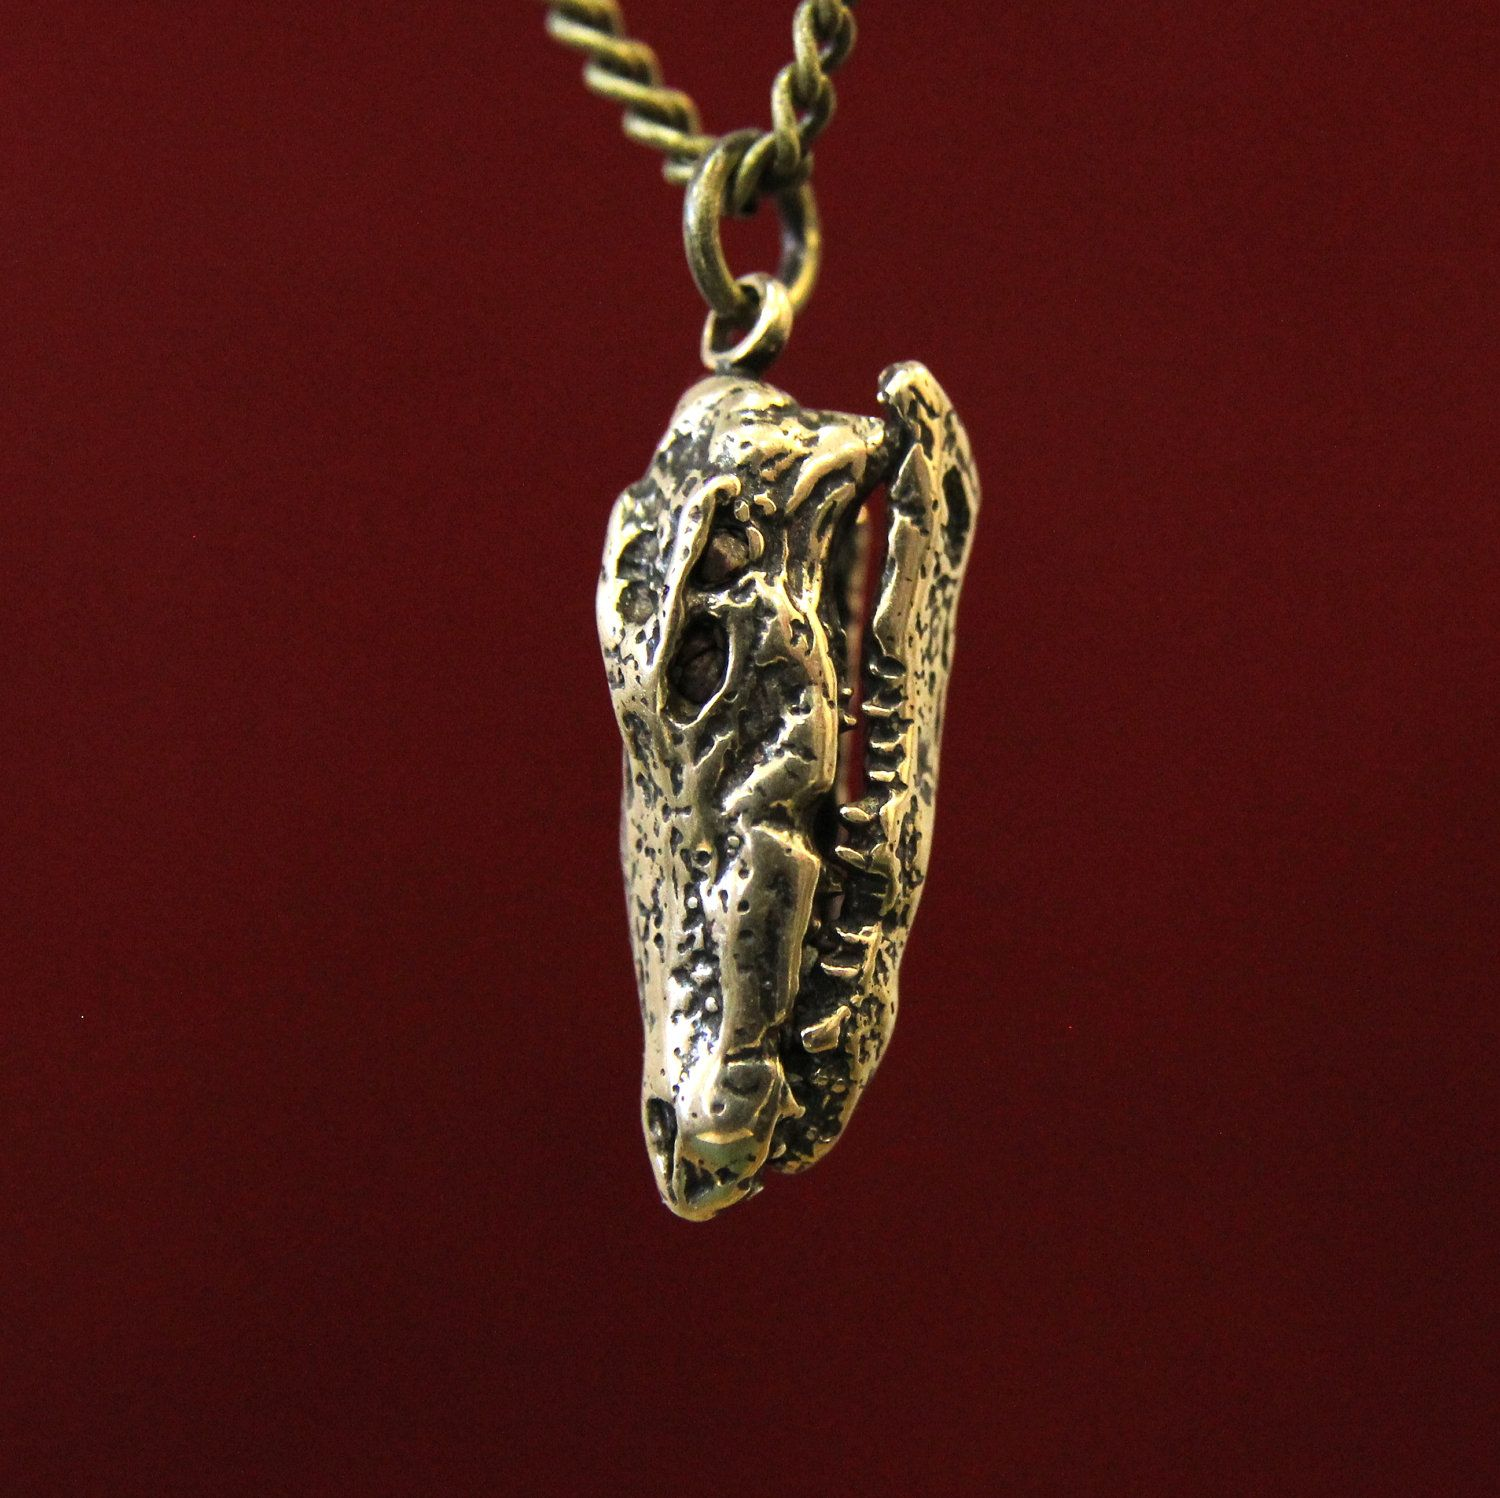 54a2dc459e7 Saltwater Crocodile Skull Pendant Necklace In Solid Bronze. $32.00, via  Etsy.